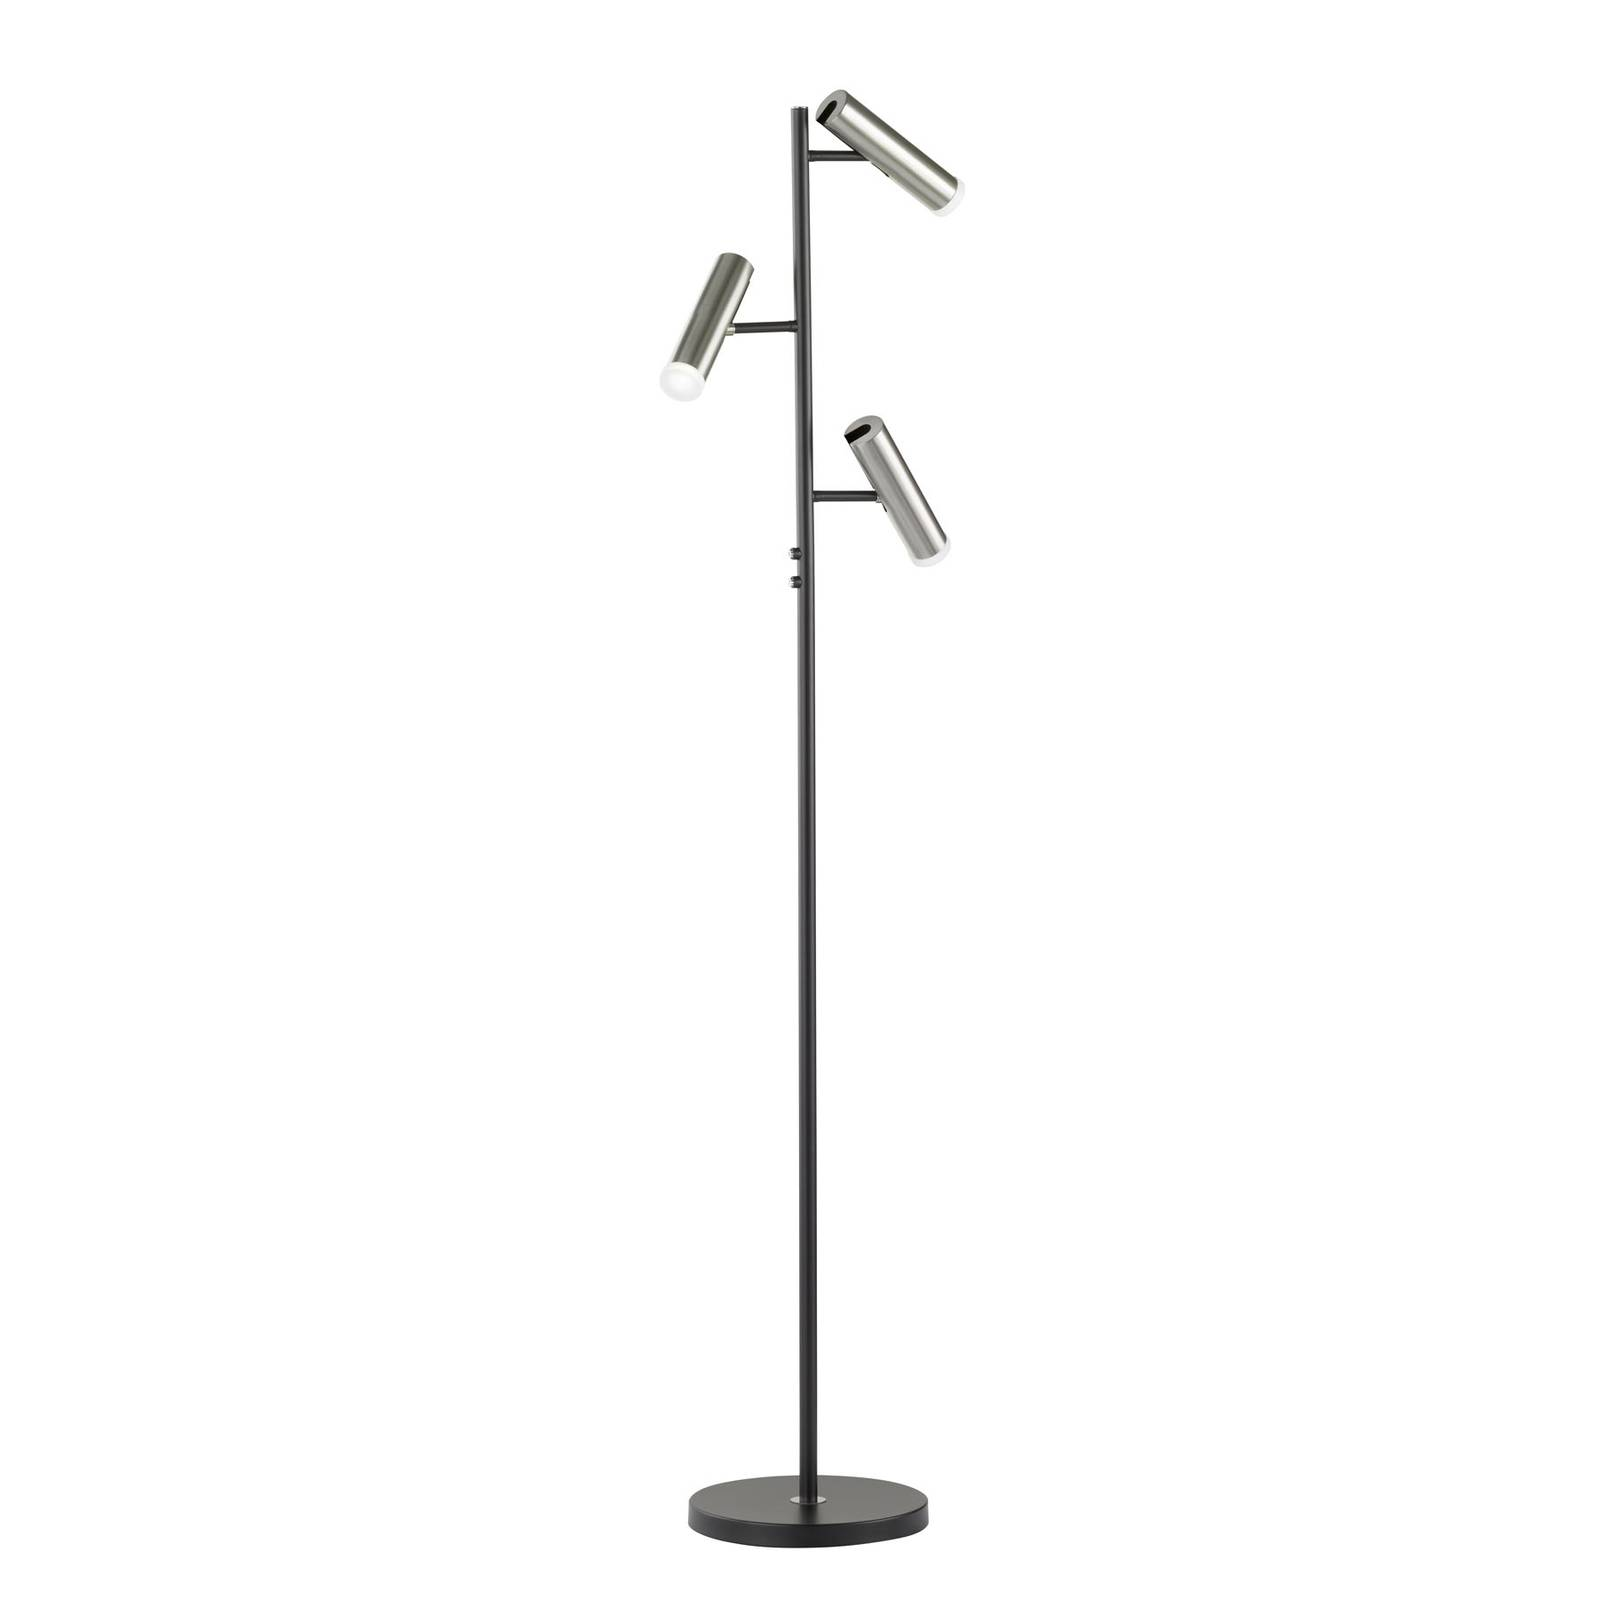 Lampadaire LED Z-Ronja 3 lampes, compatible ZigBee